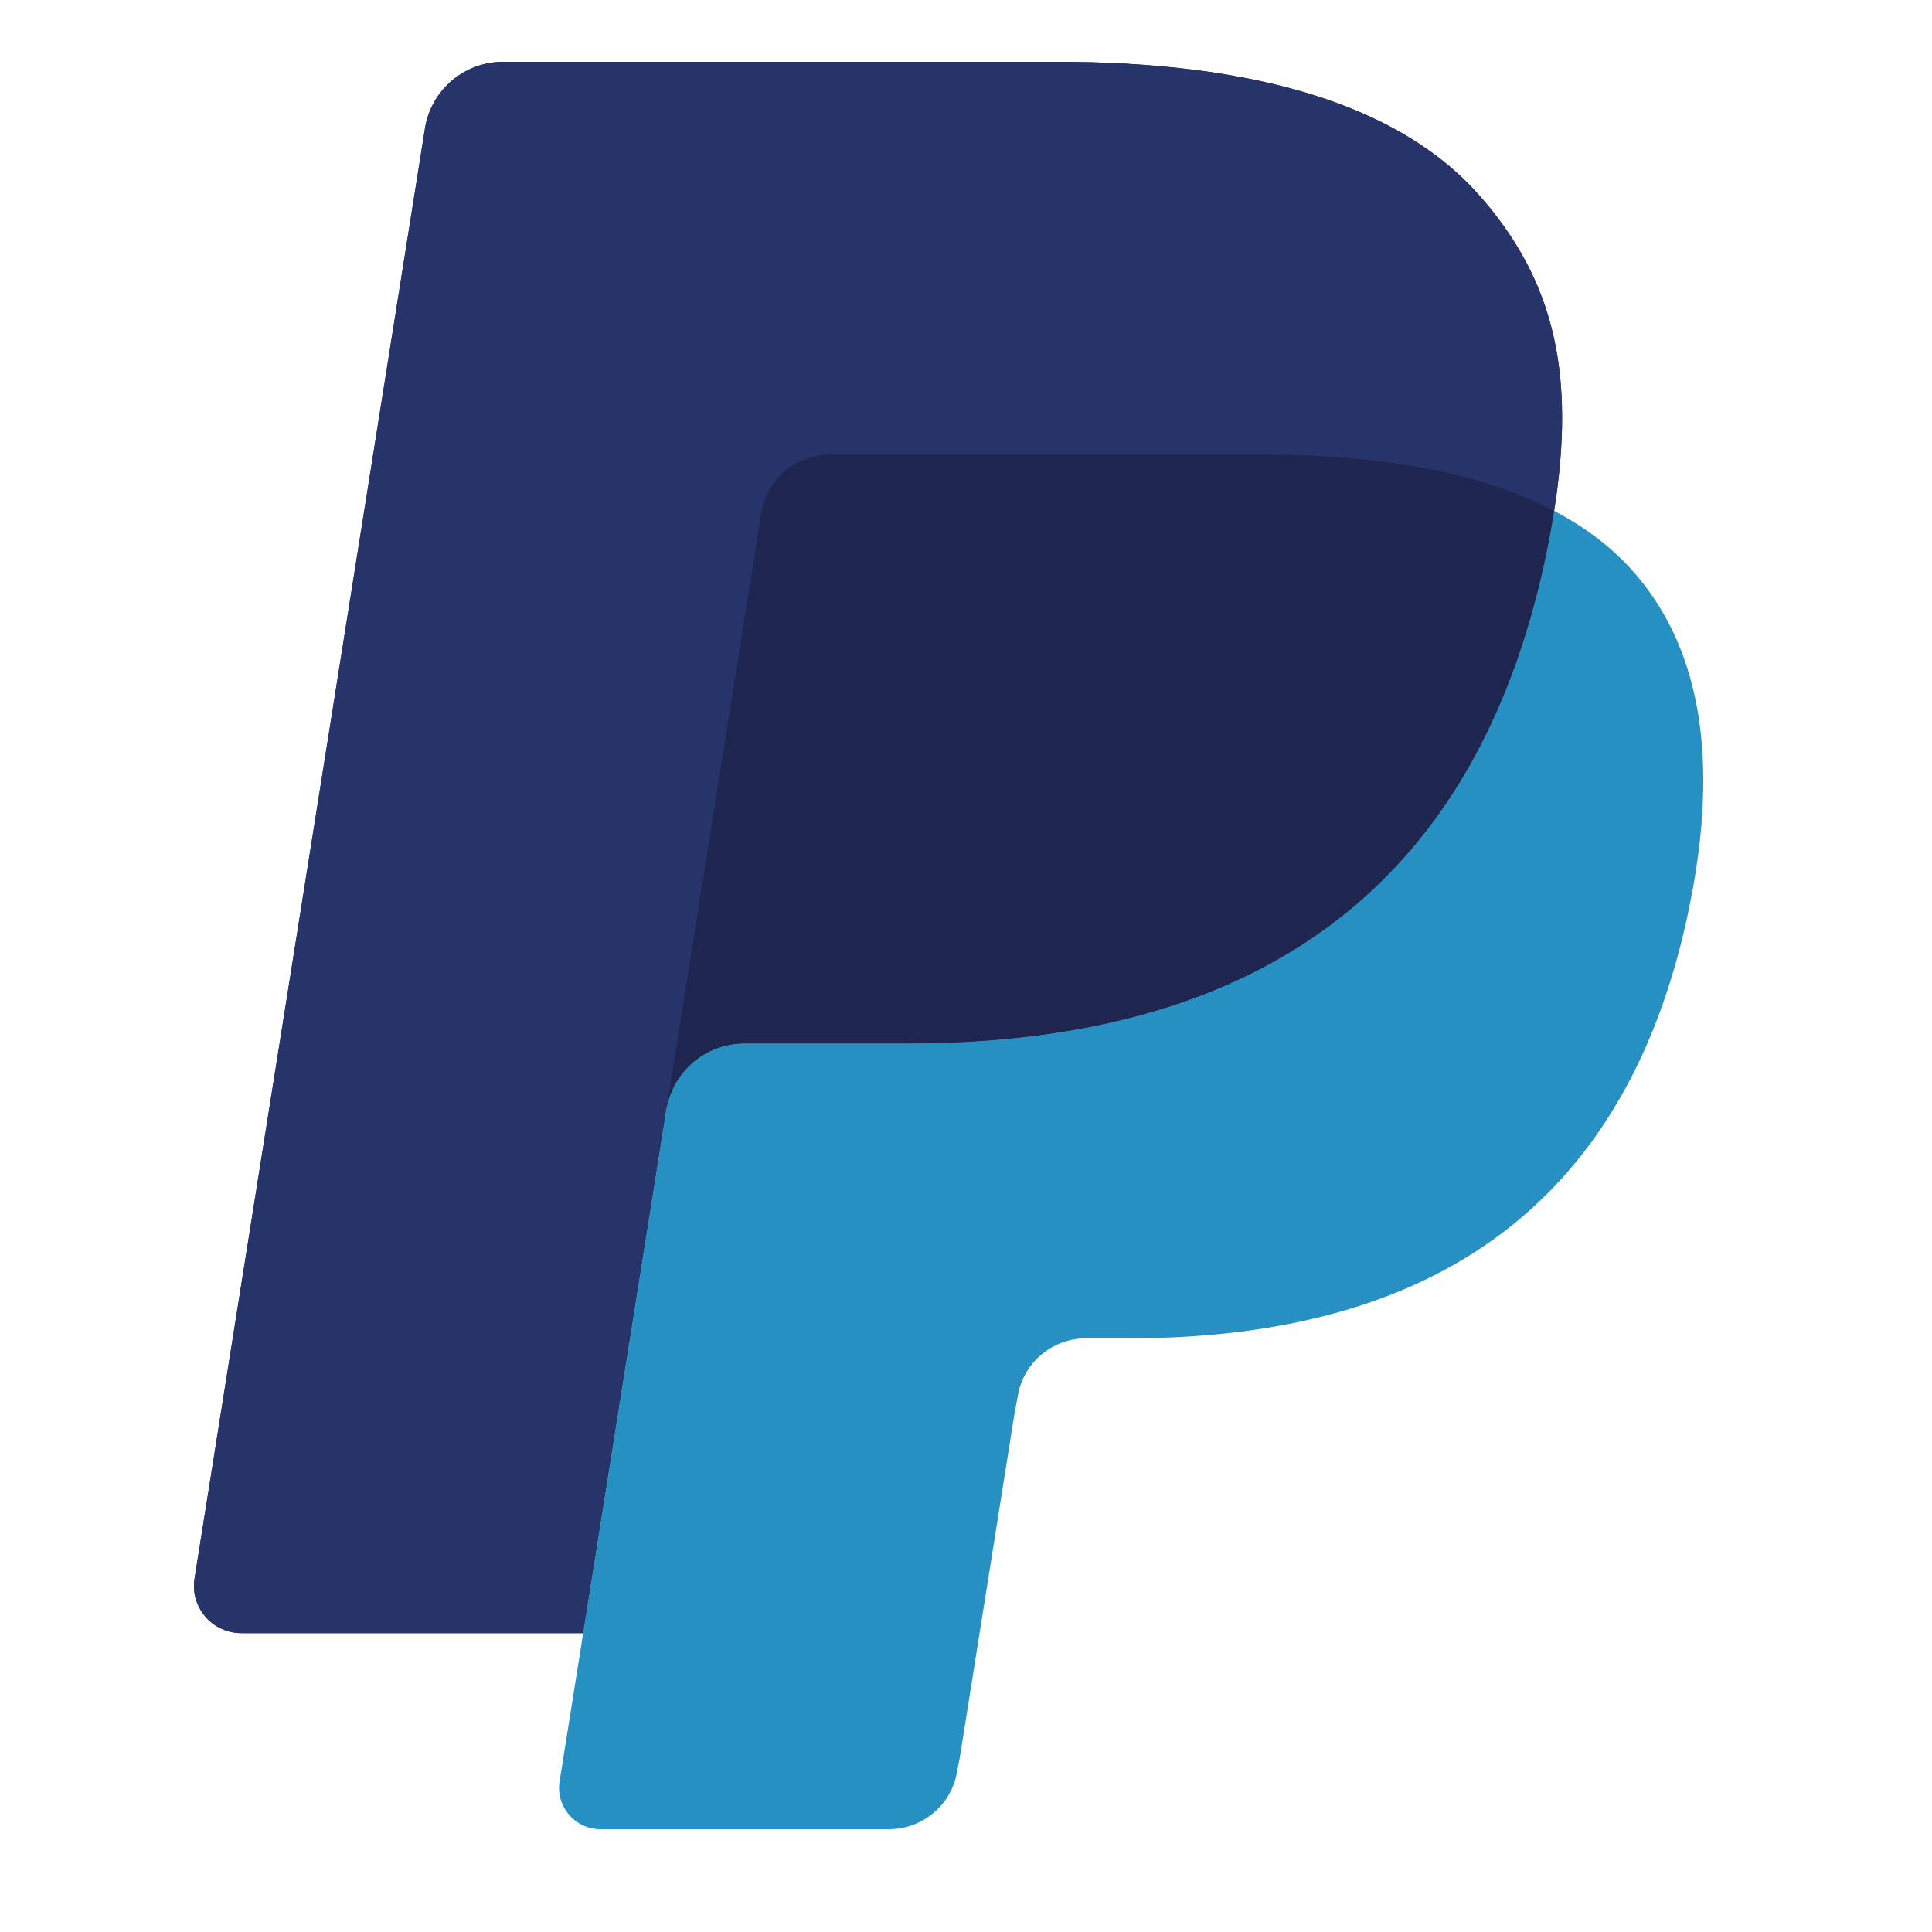 Paypal logo and symbol, meaning, history, PNG